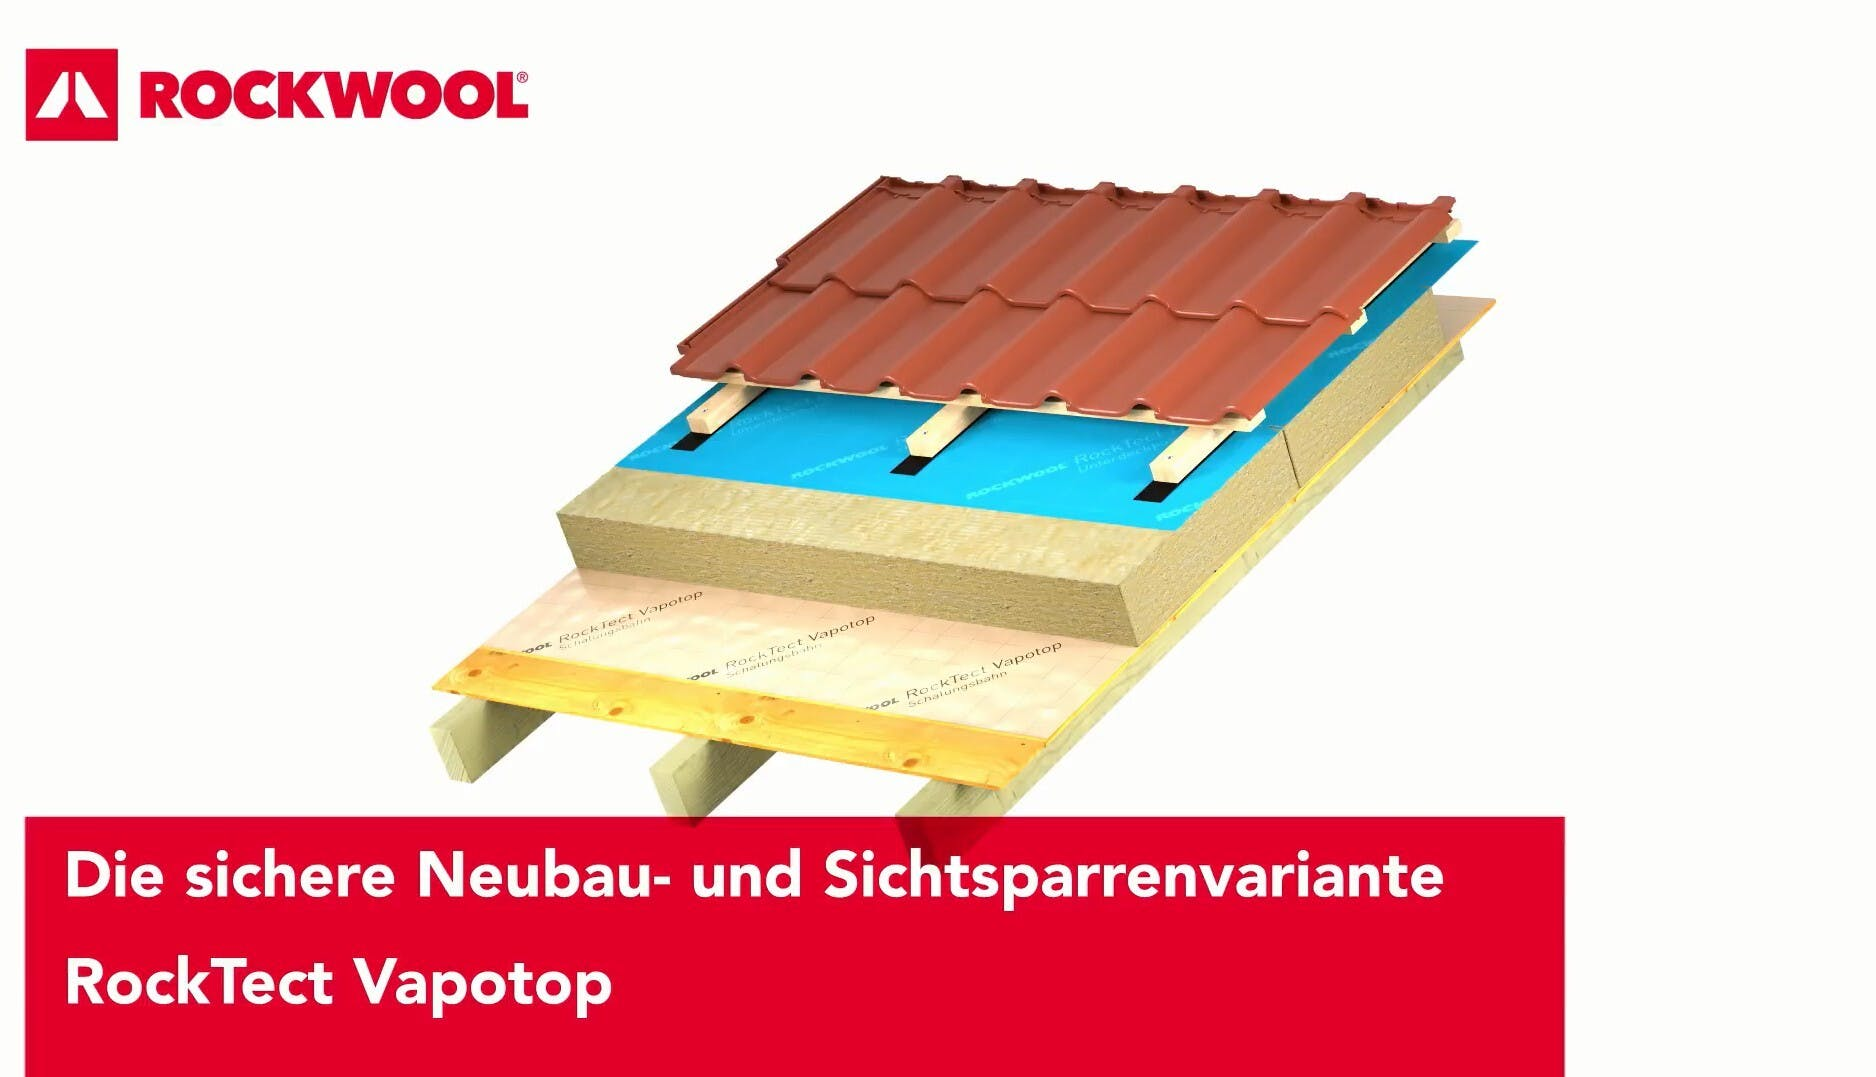 thumb, thumbnail, video, roof, pitched roof, insulation above the rafters, meisterdach, variante vapotop, rocktect vapotop, germany